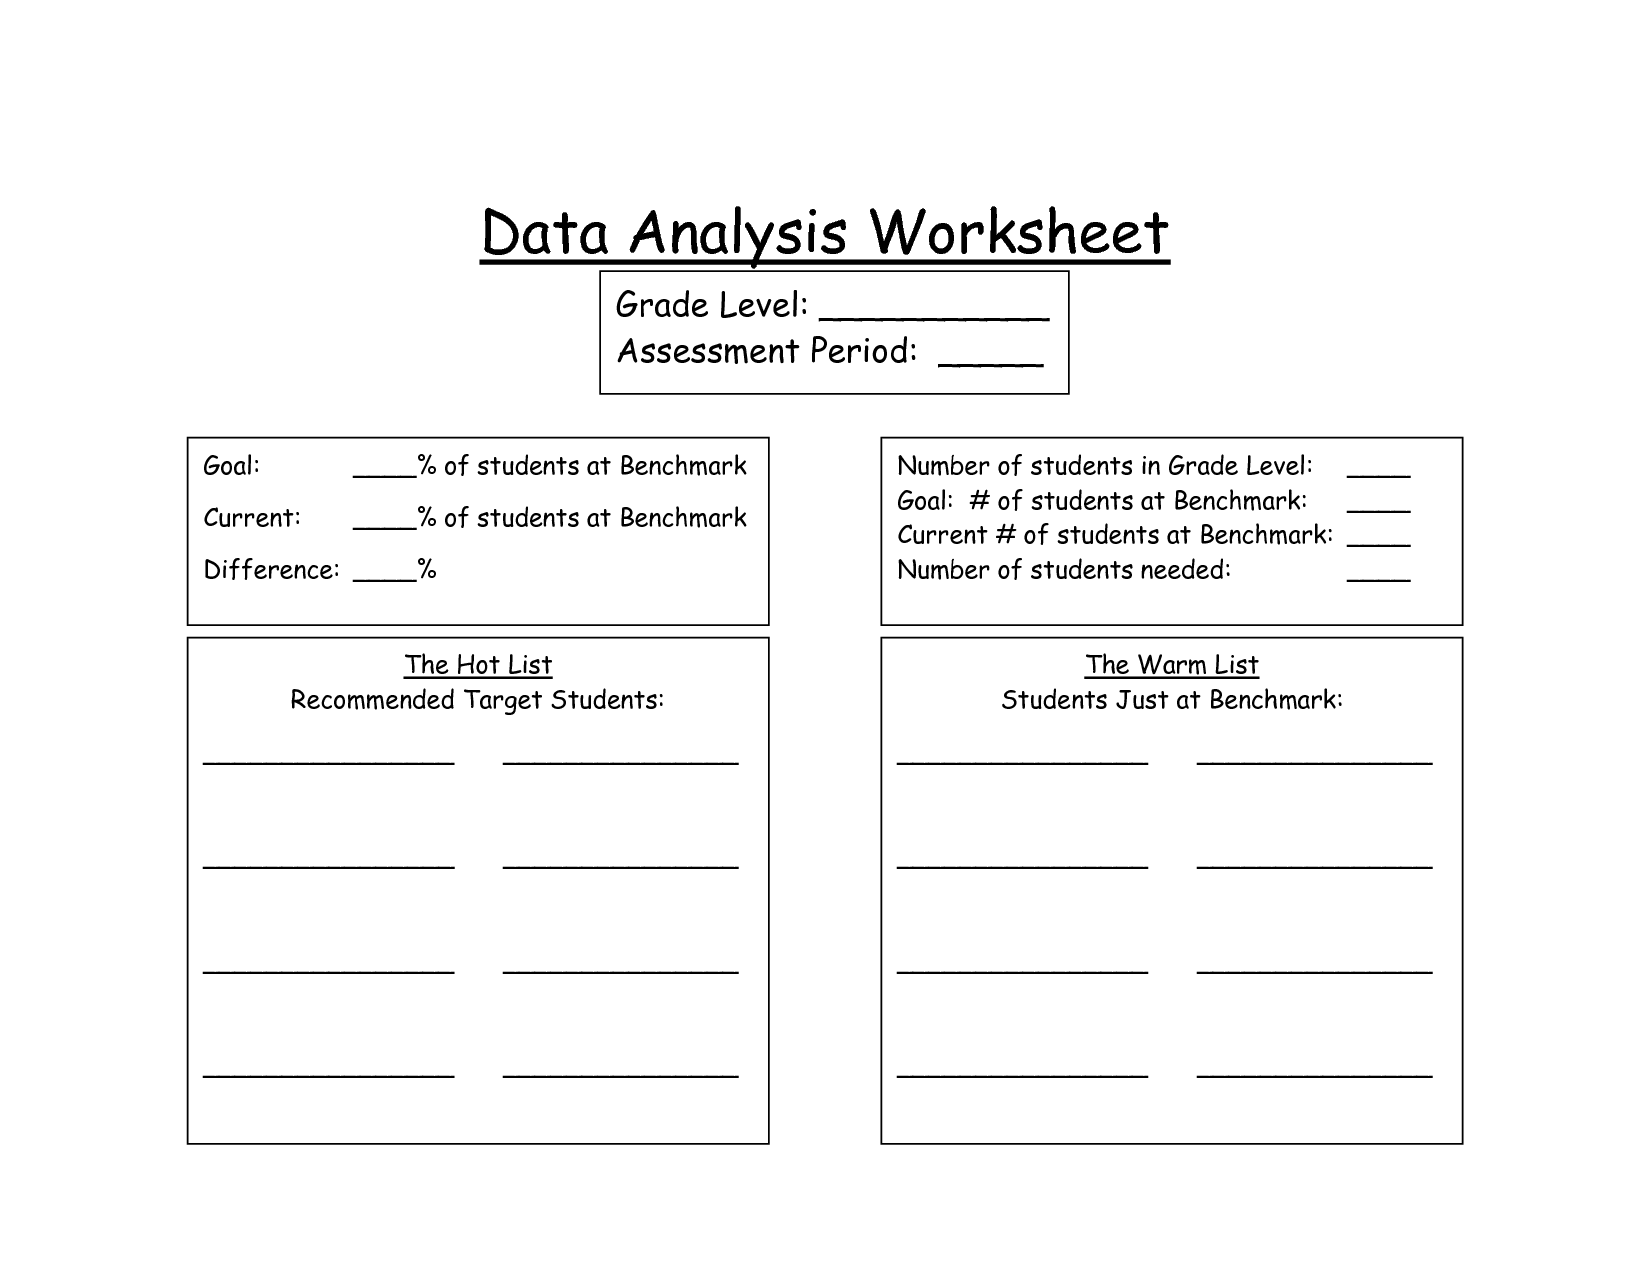 Dataysis Worksheet Biological Science Picture